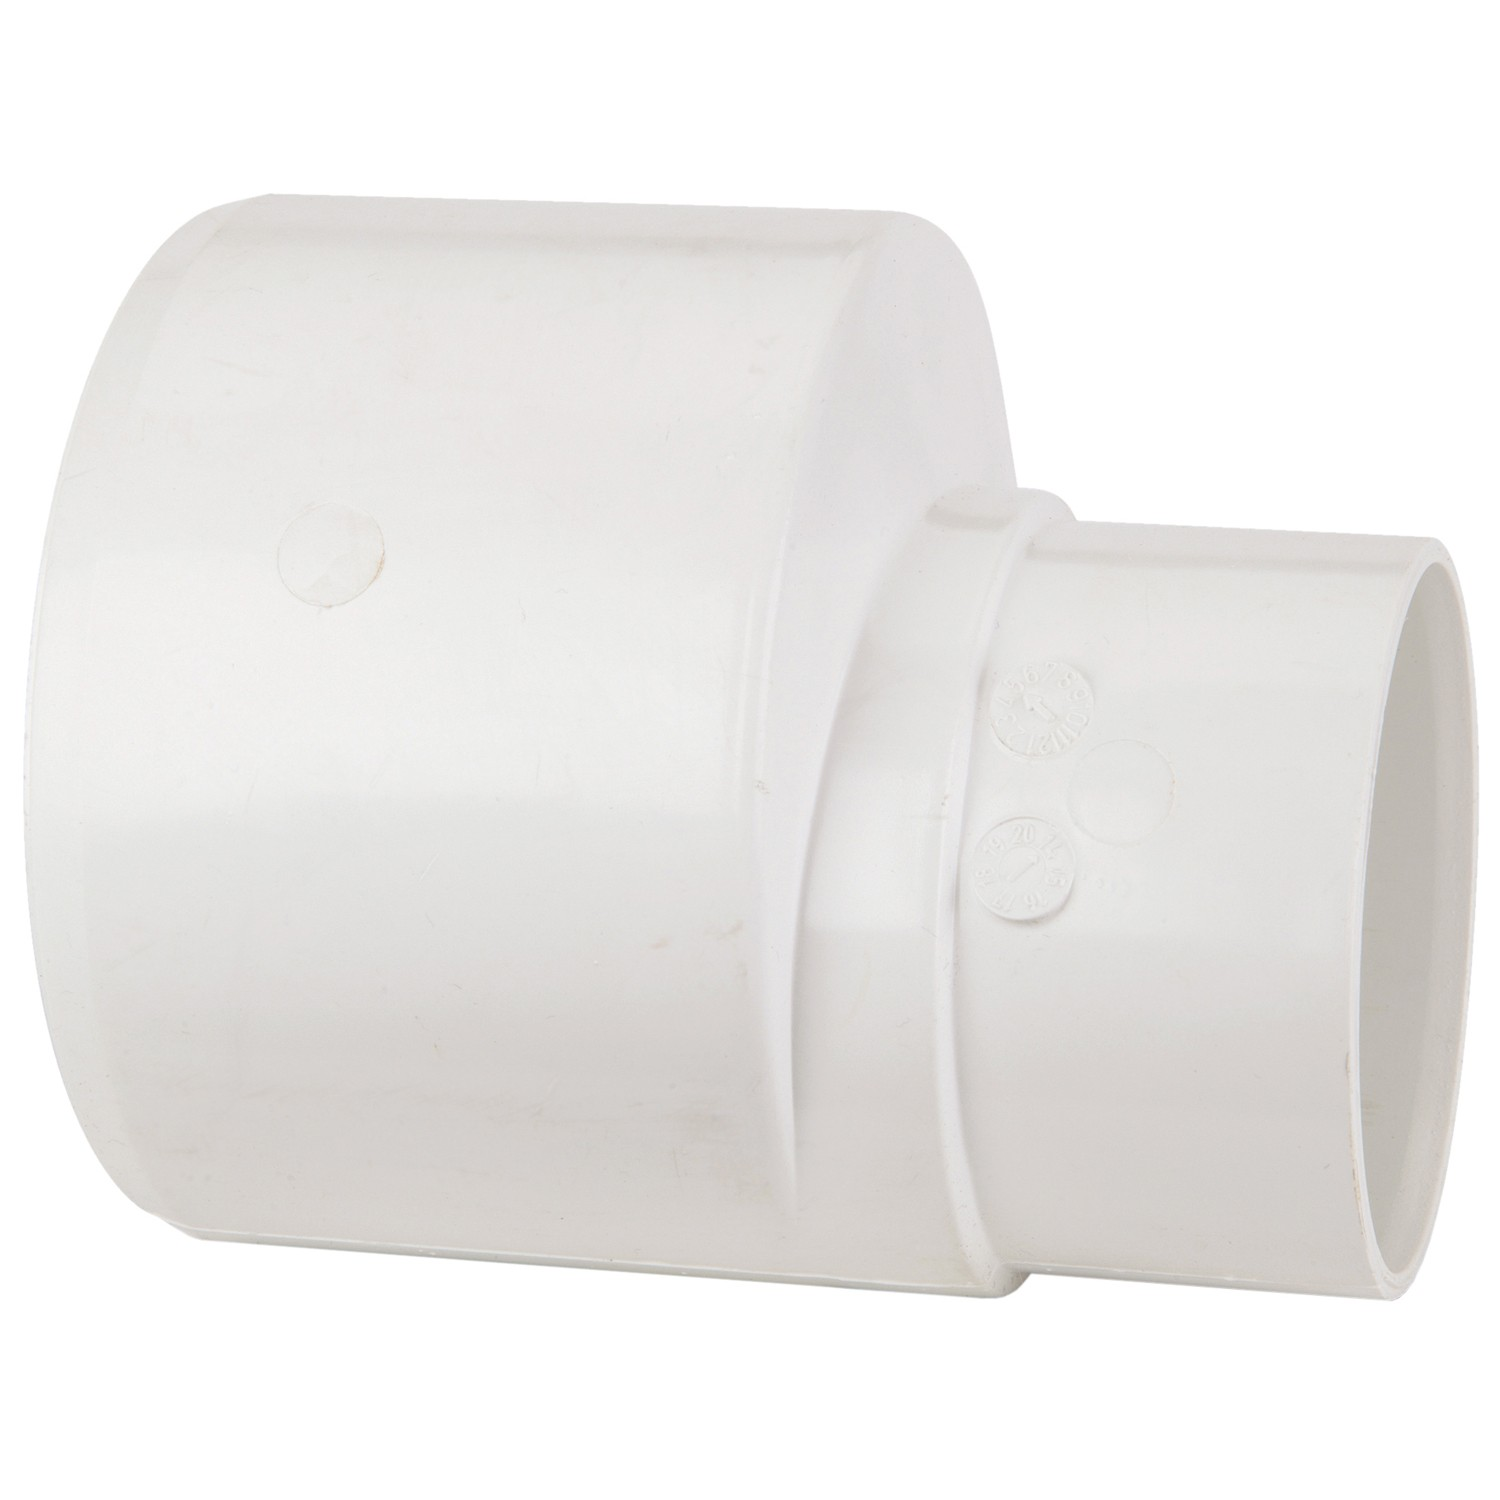 Polypipe 110mm To 68mm Rainwater Reducer - White